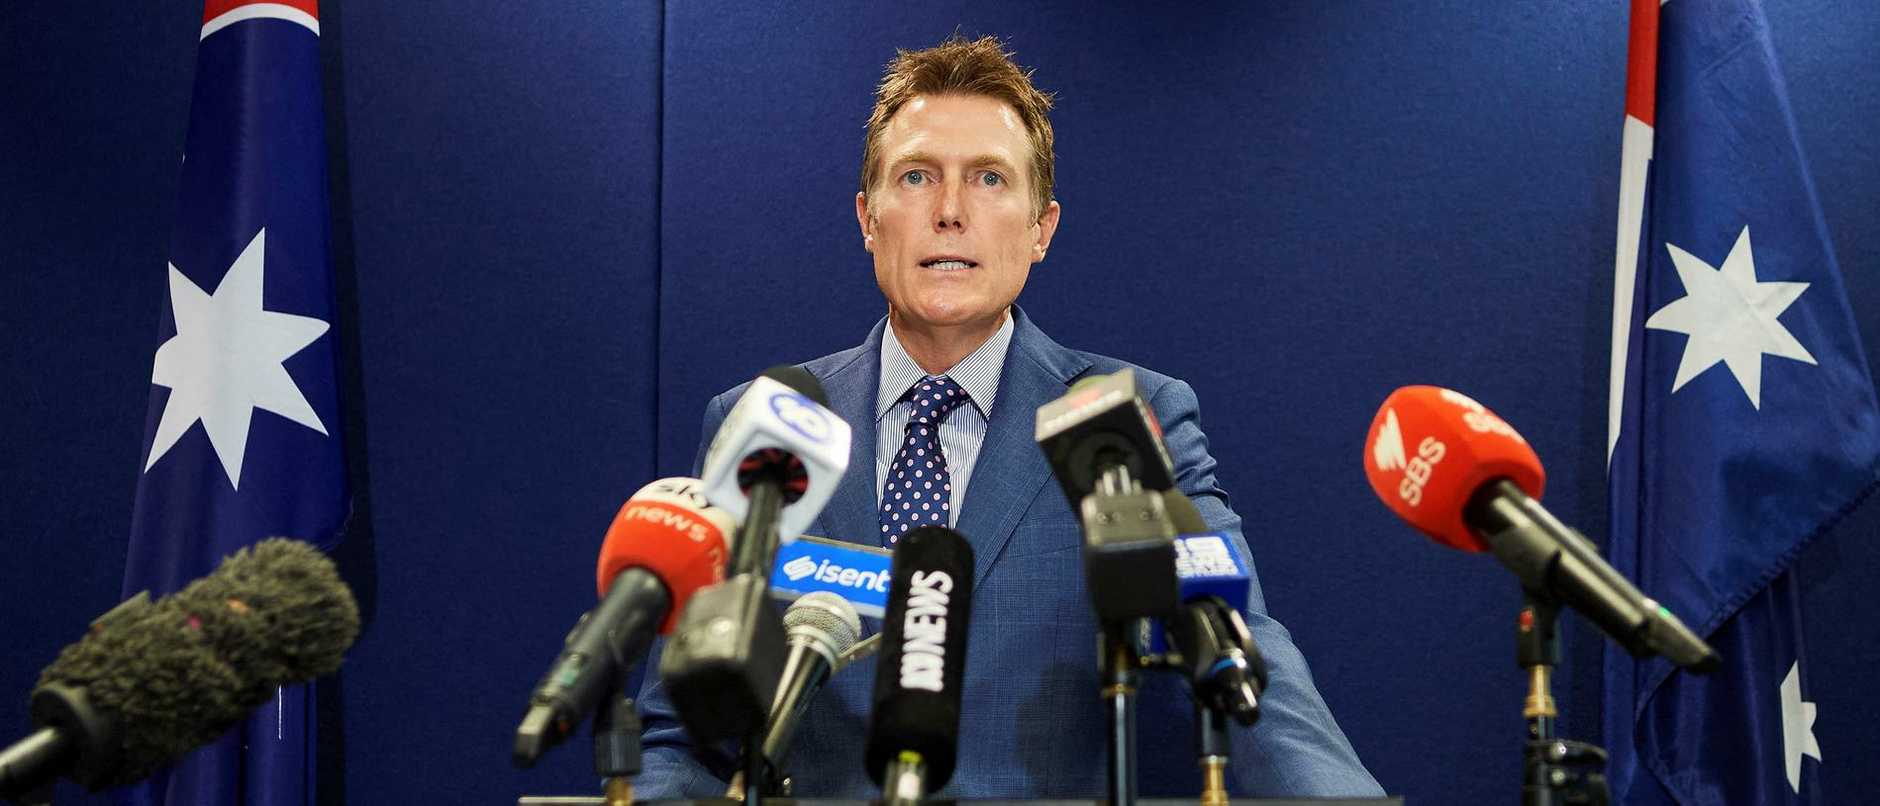 As Christian Porter links himself to allegations of a teenage rape, Susie O'Brien and Patrick Carlyon thrash out the Attorney General's conundrum.